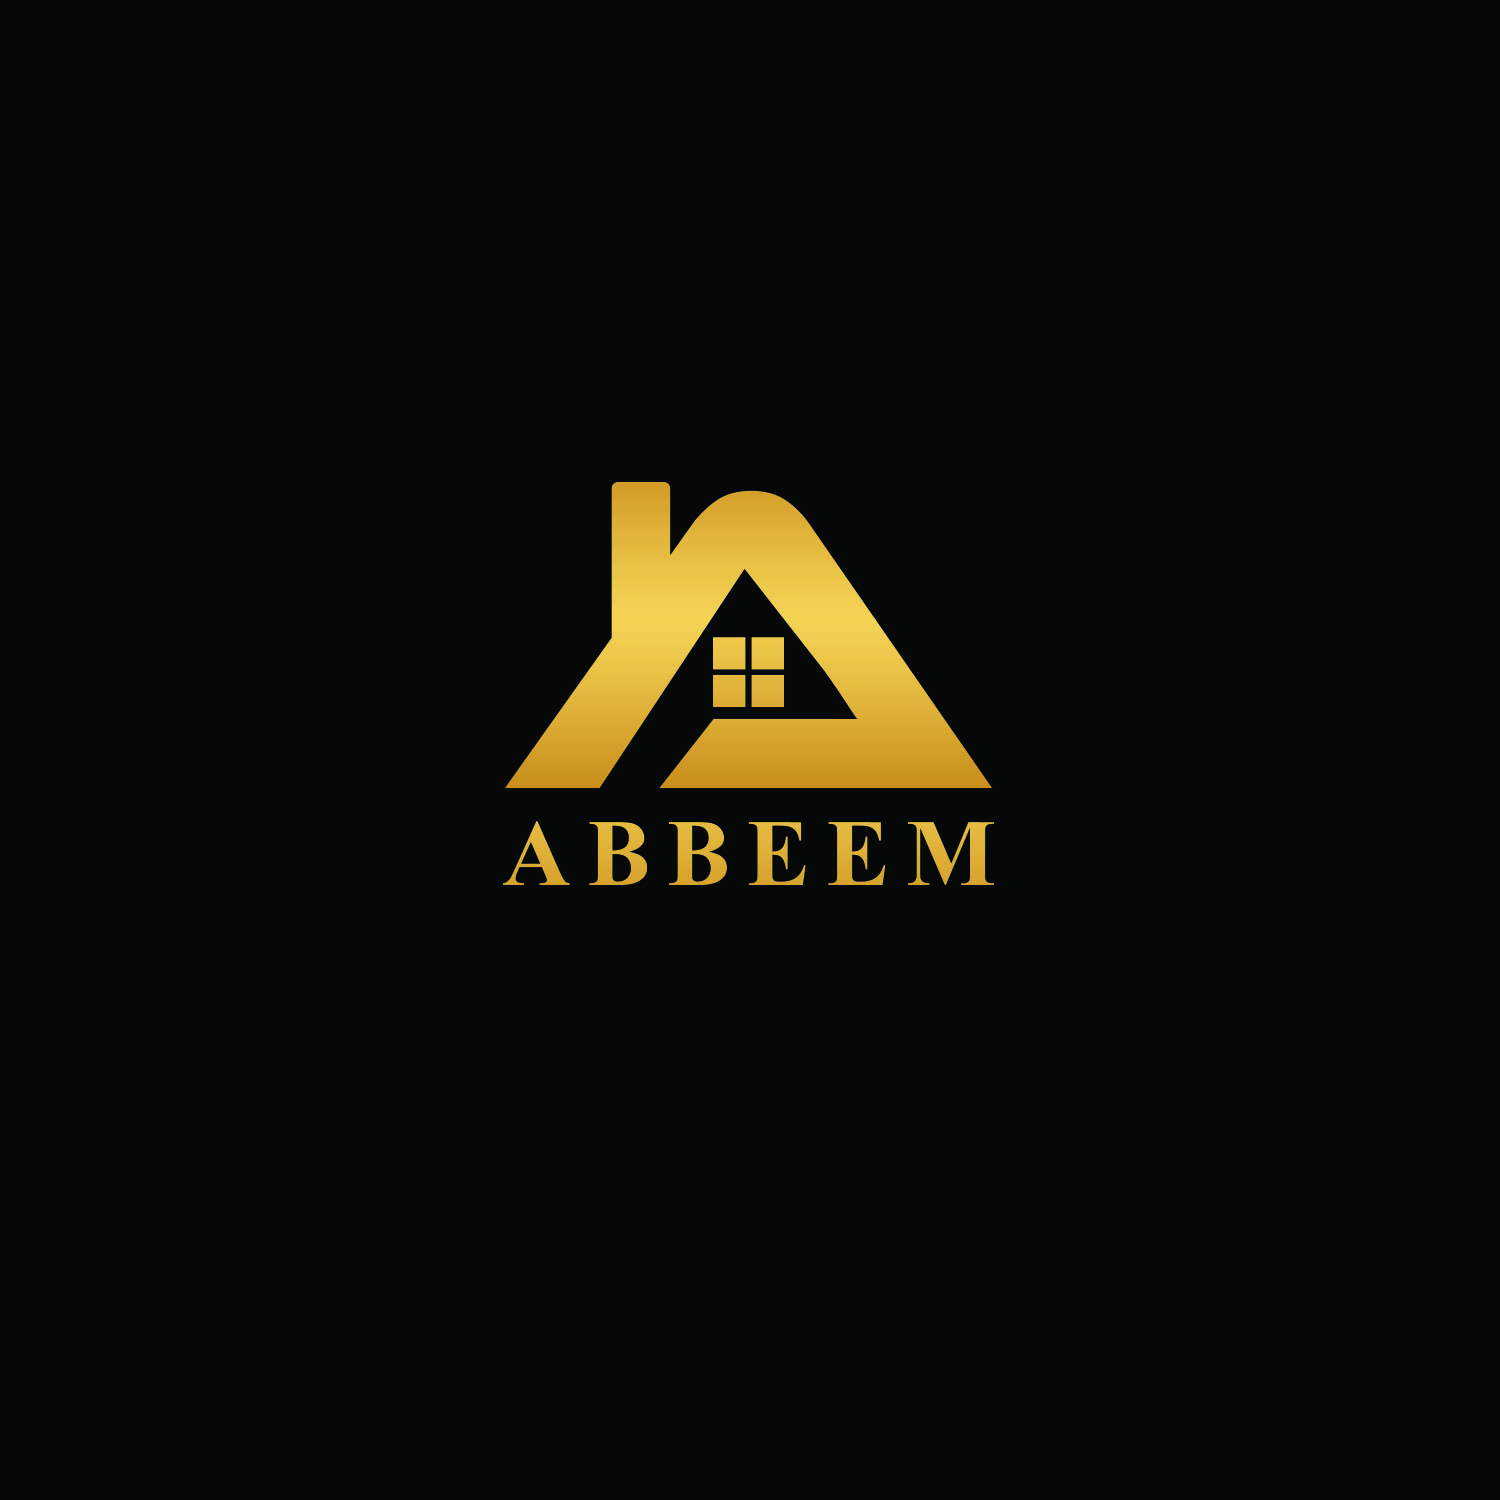 Logo Design by Umair ahmed Iqbal - Entry No. 29 in the Logo Design Contest Luxury Logo Design for Abbeem.